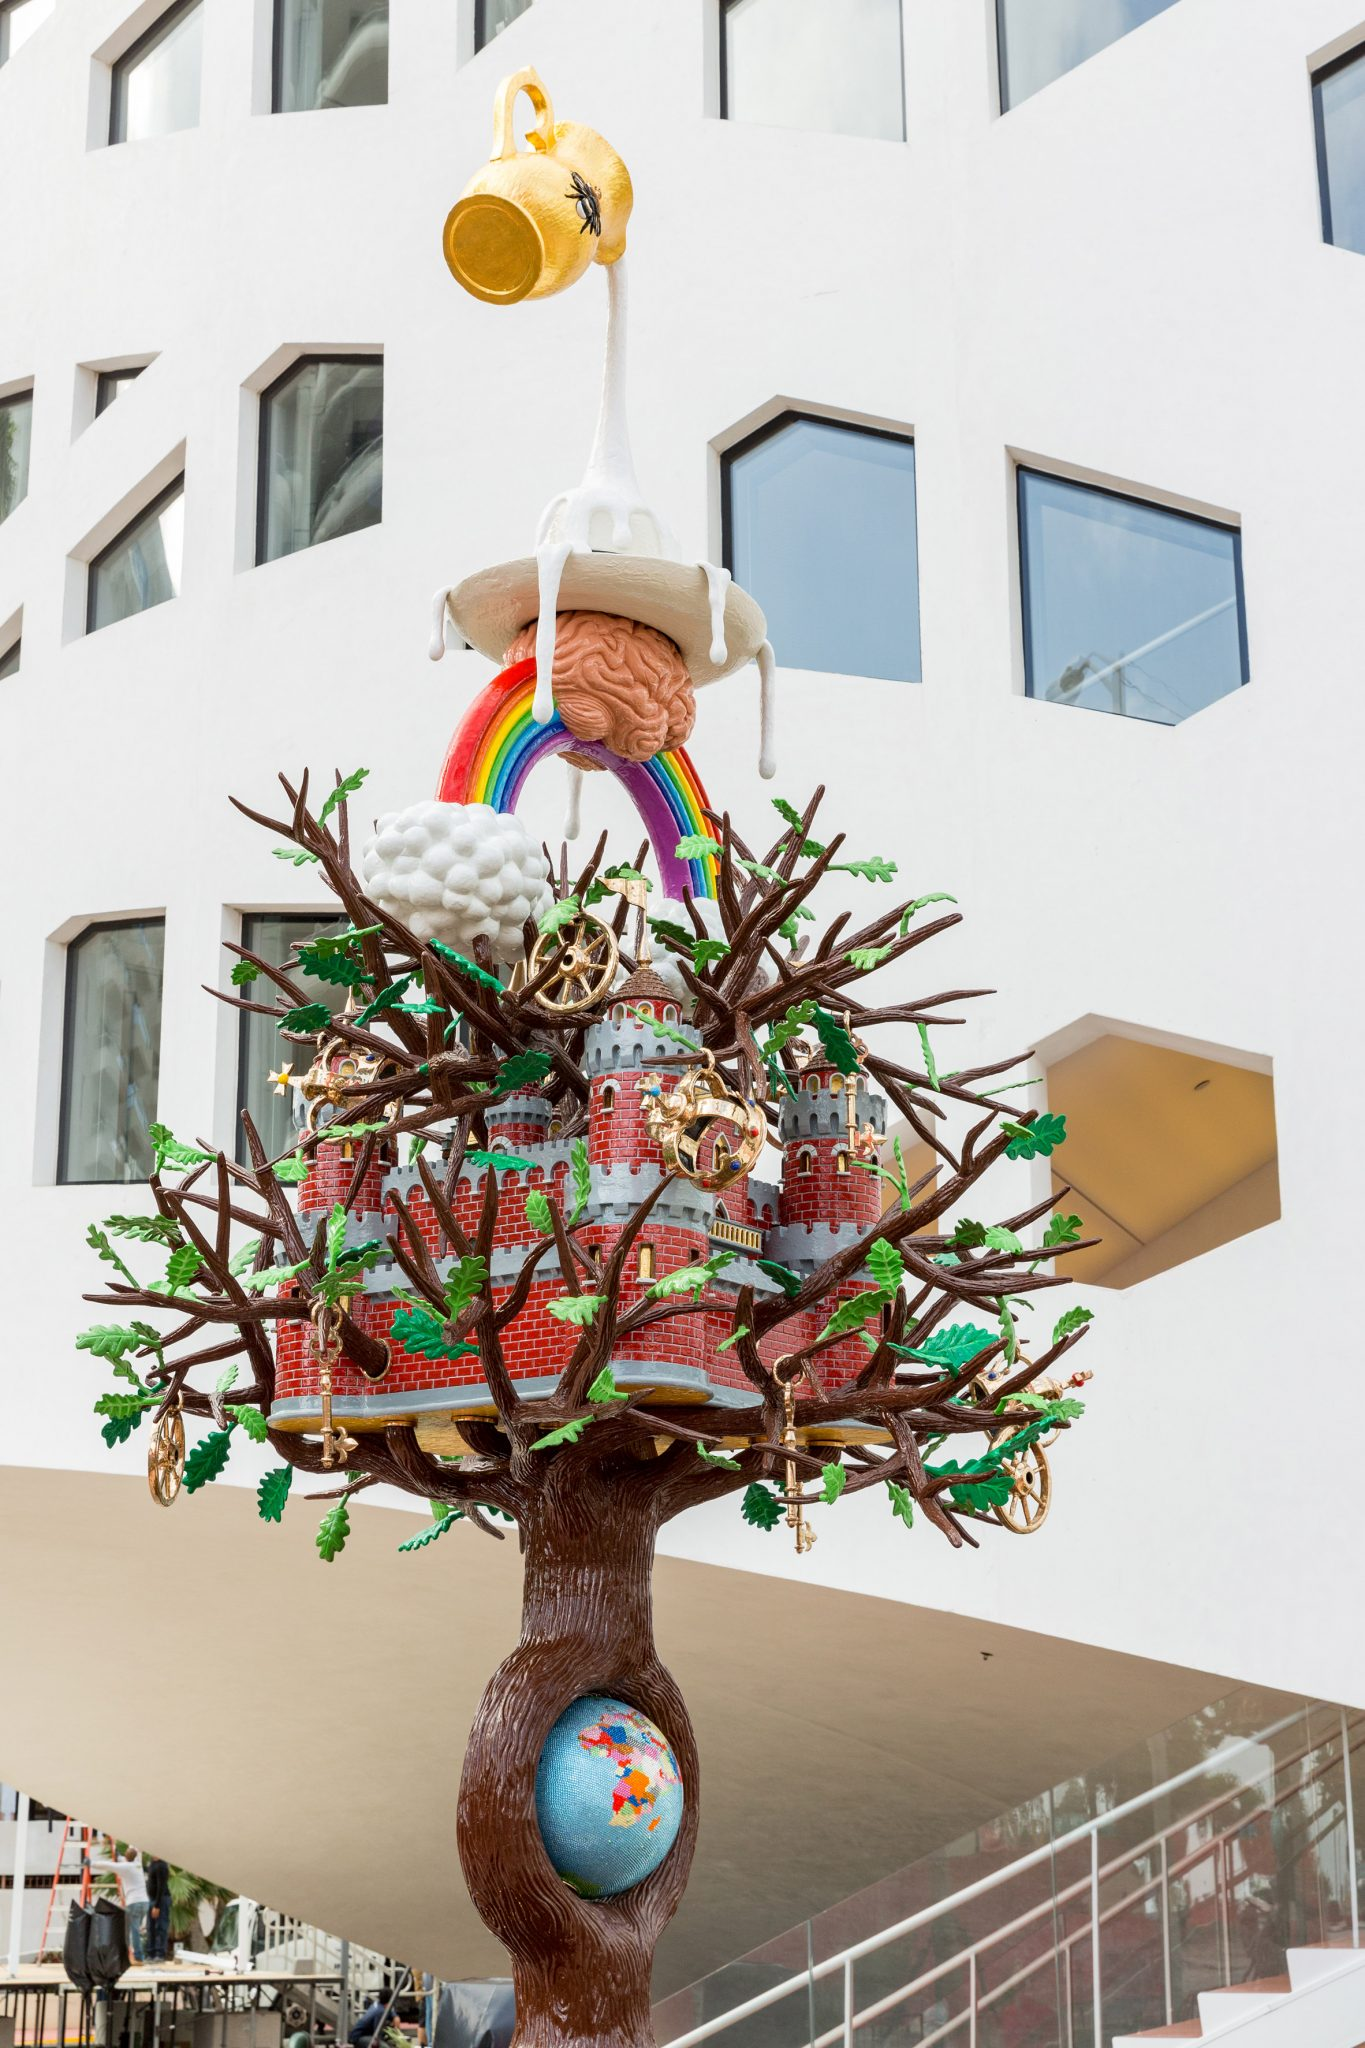 studio-job-tree-of-life-design-miami-statue_dezeen_2364_col_1